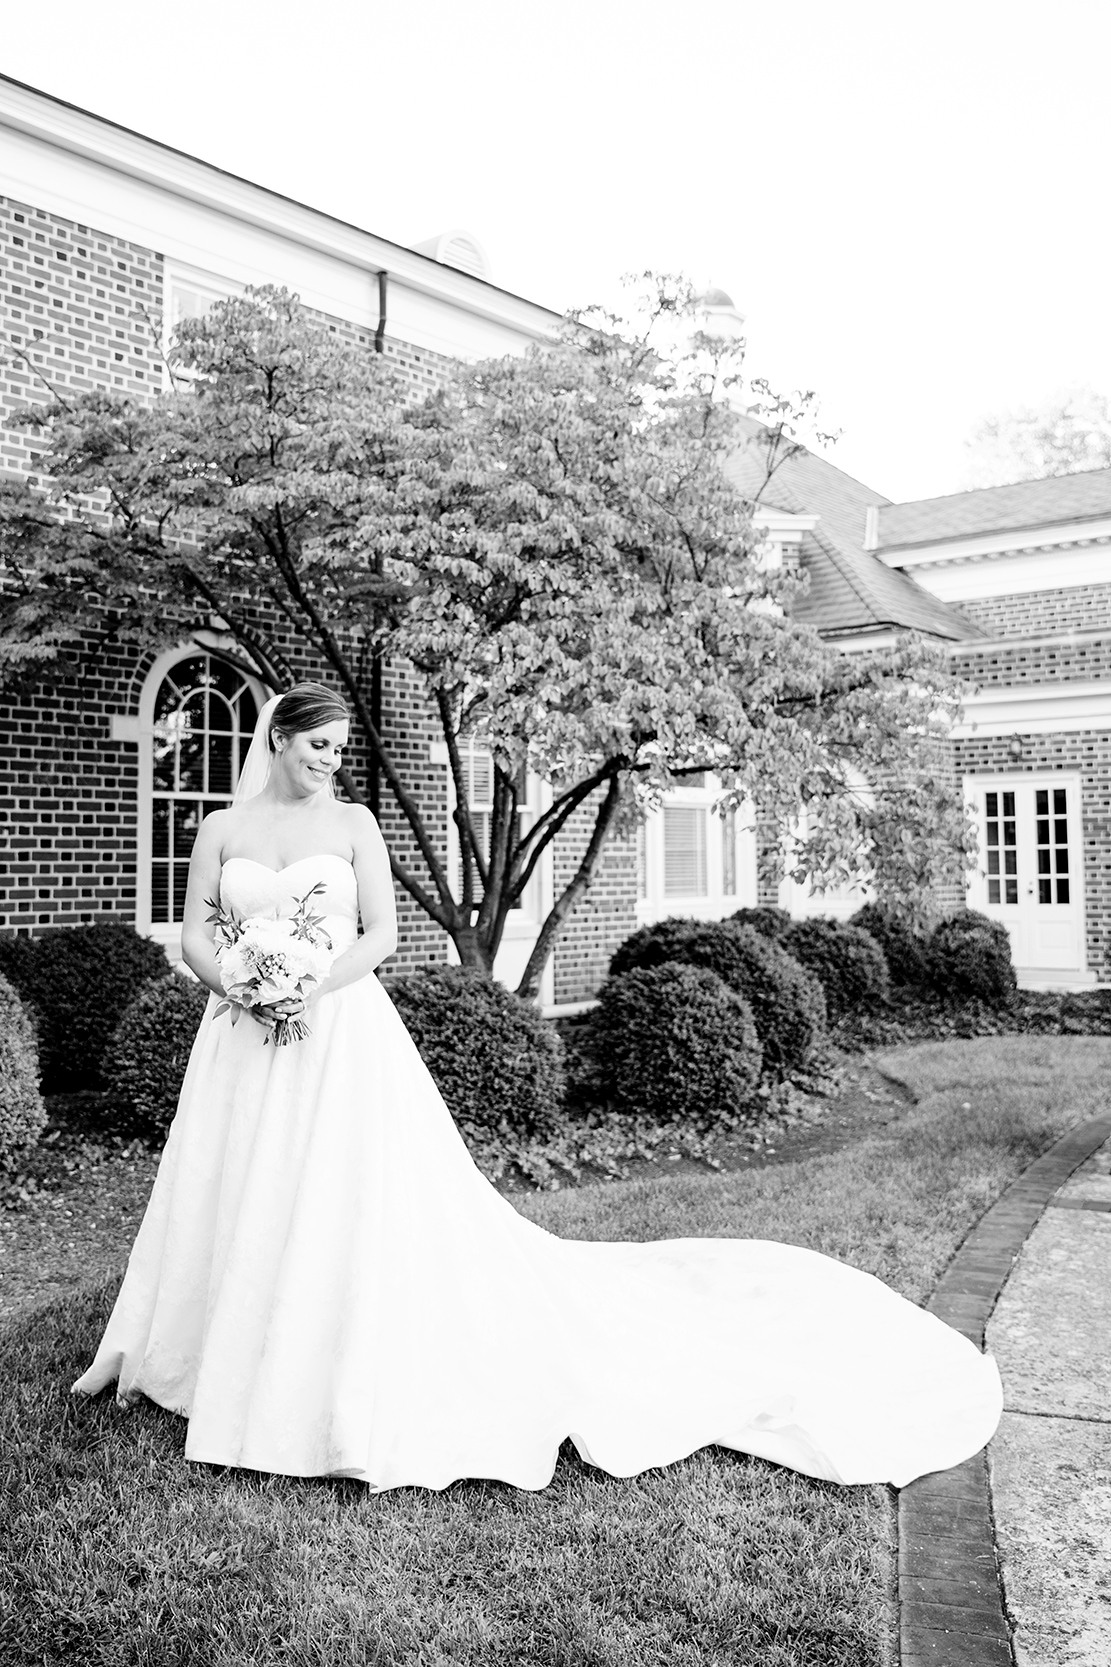 Wedding Preview   Beth  Blakley - Image Property of www.j-dphoto.com